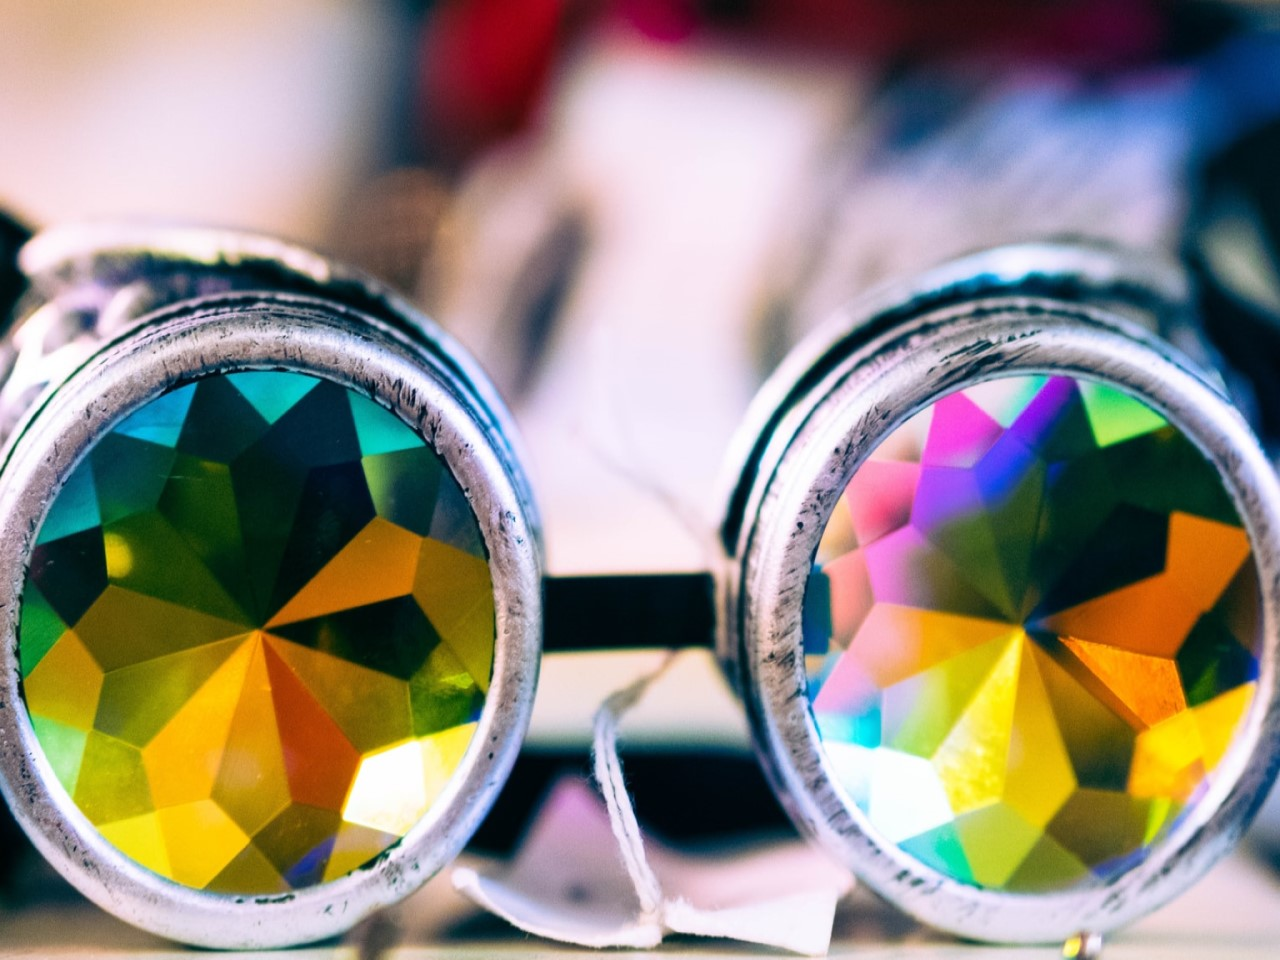 A pair of kaleidoscope glasses